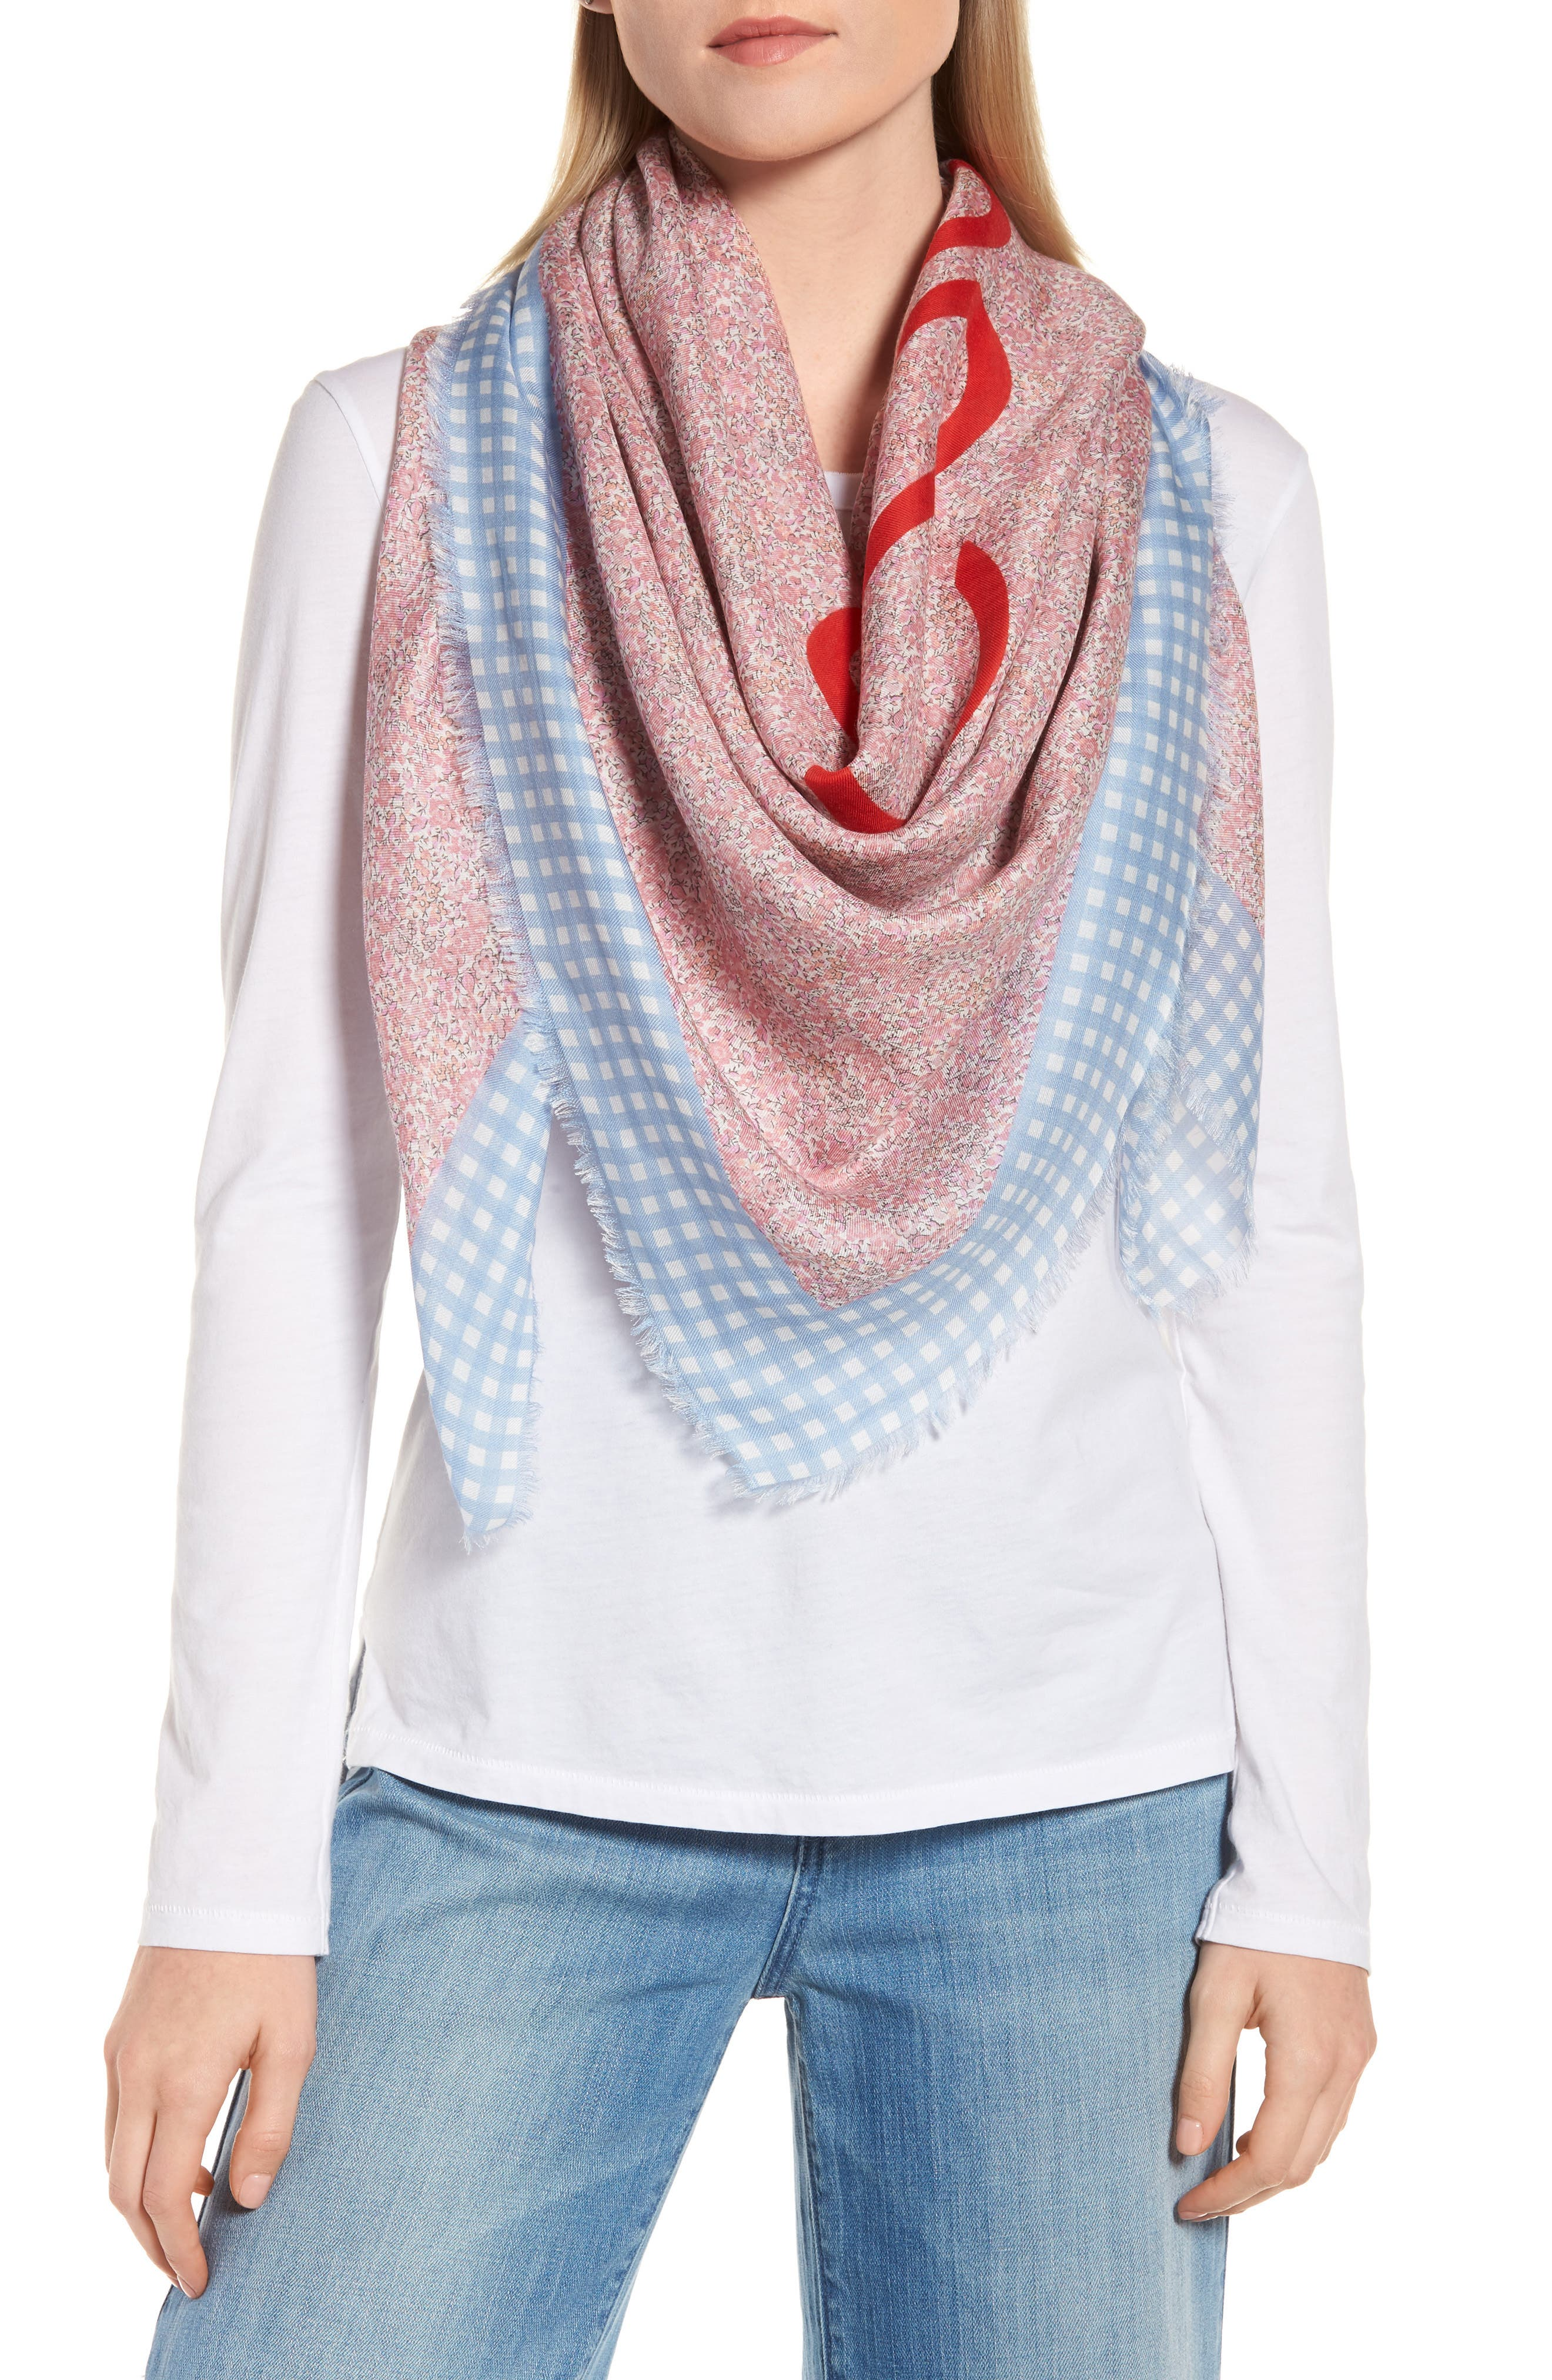 Liberty Gingham Scarf,                             Alternate thumbnail 2, color,                             Pink/ Blue